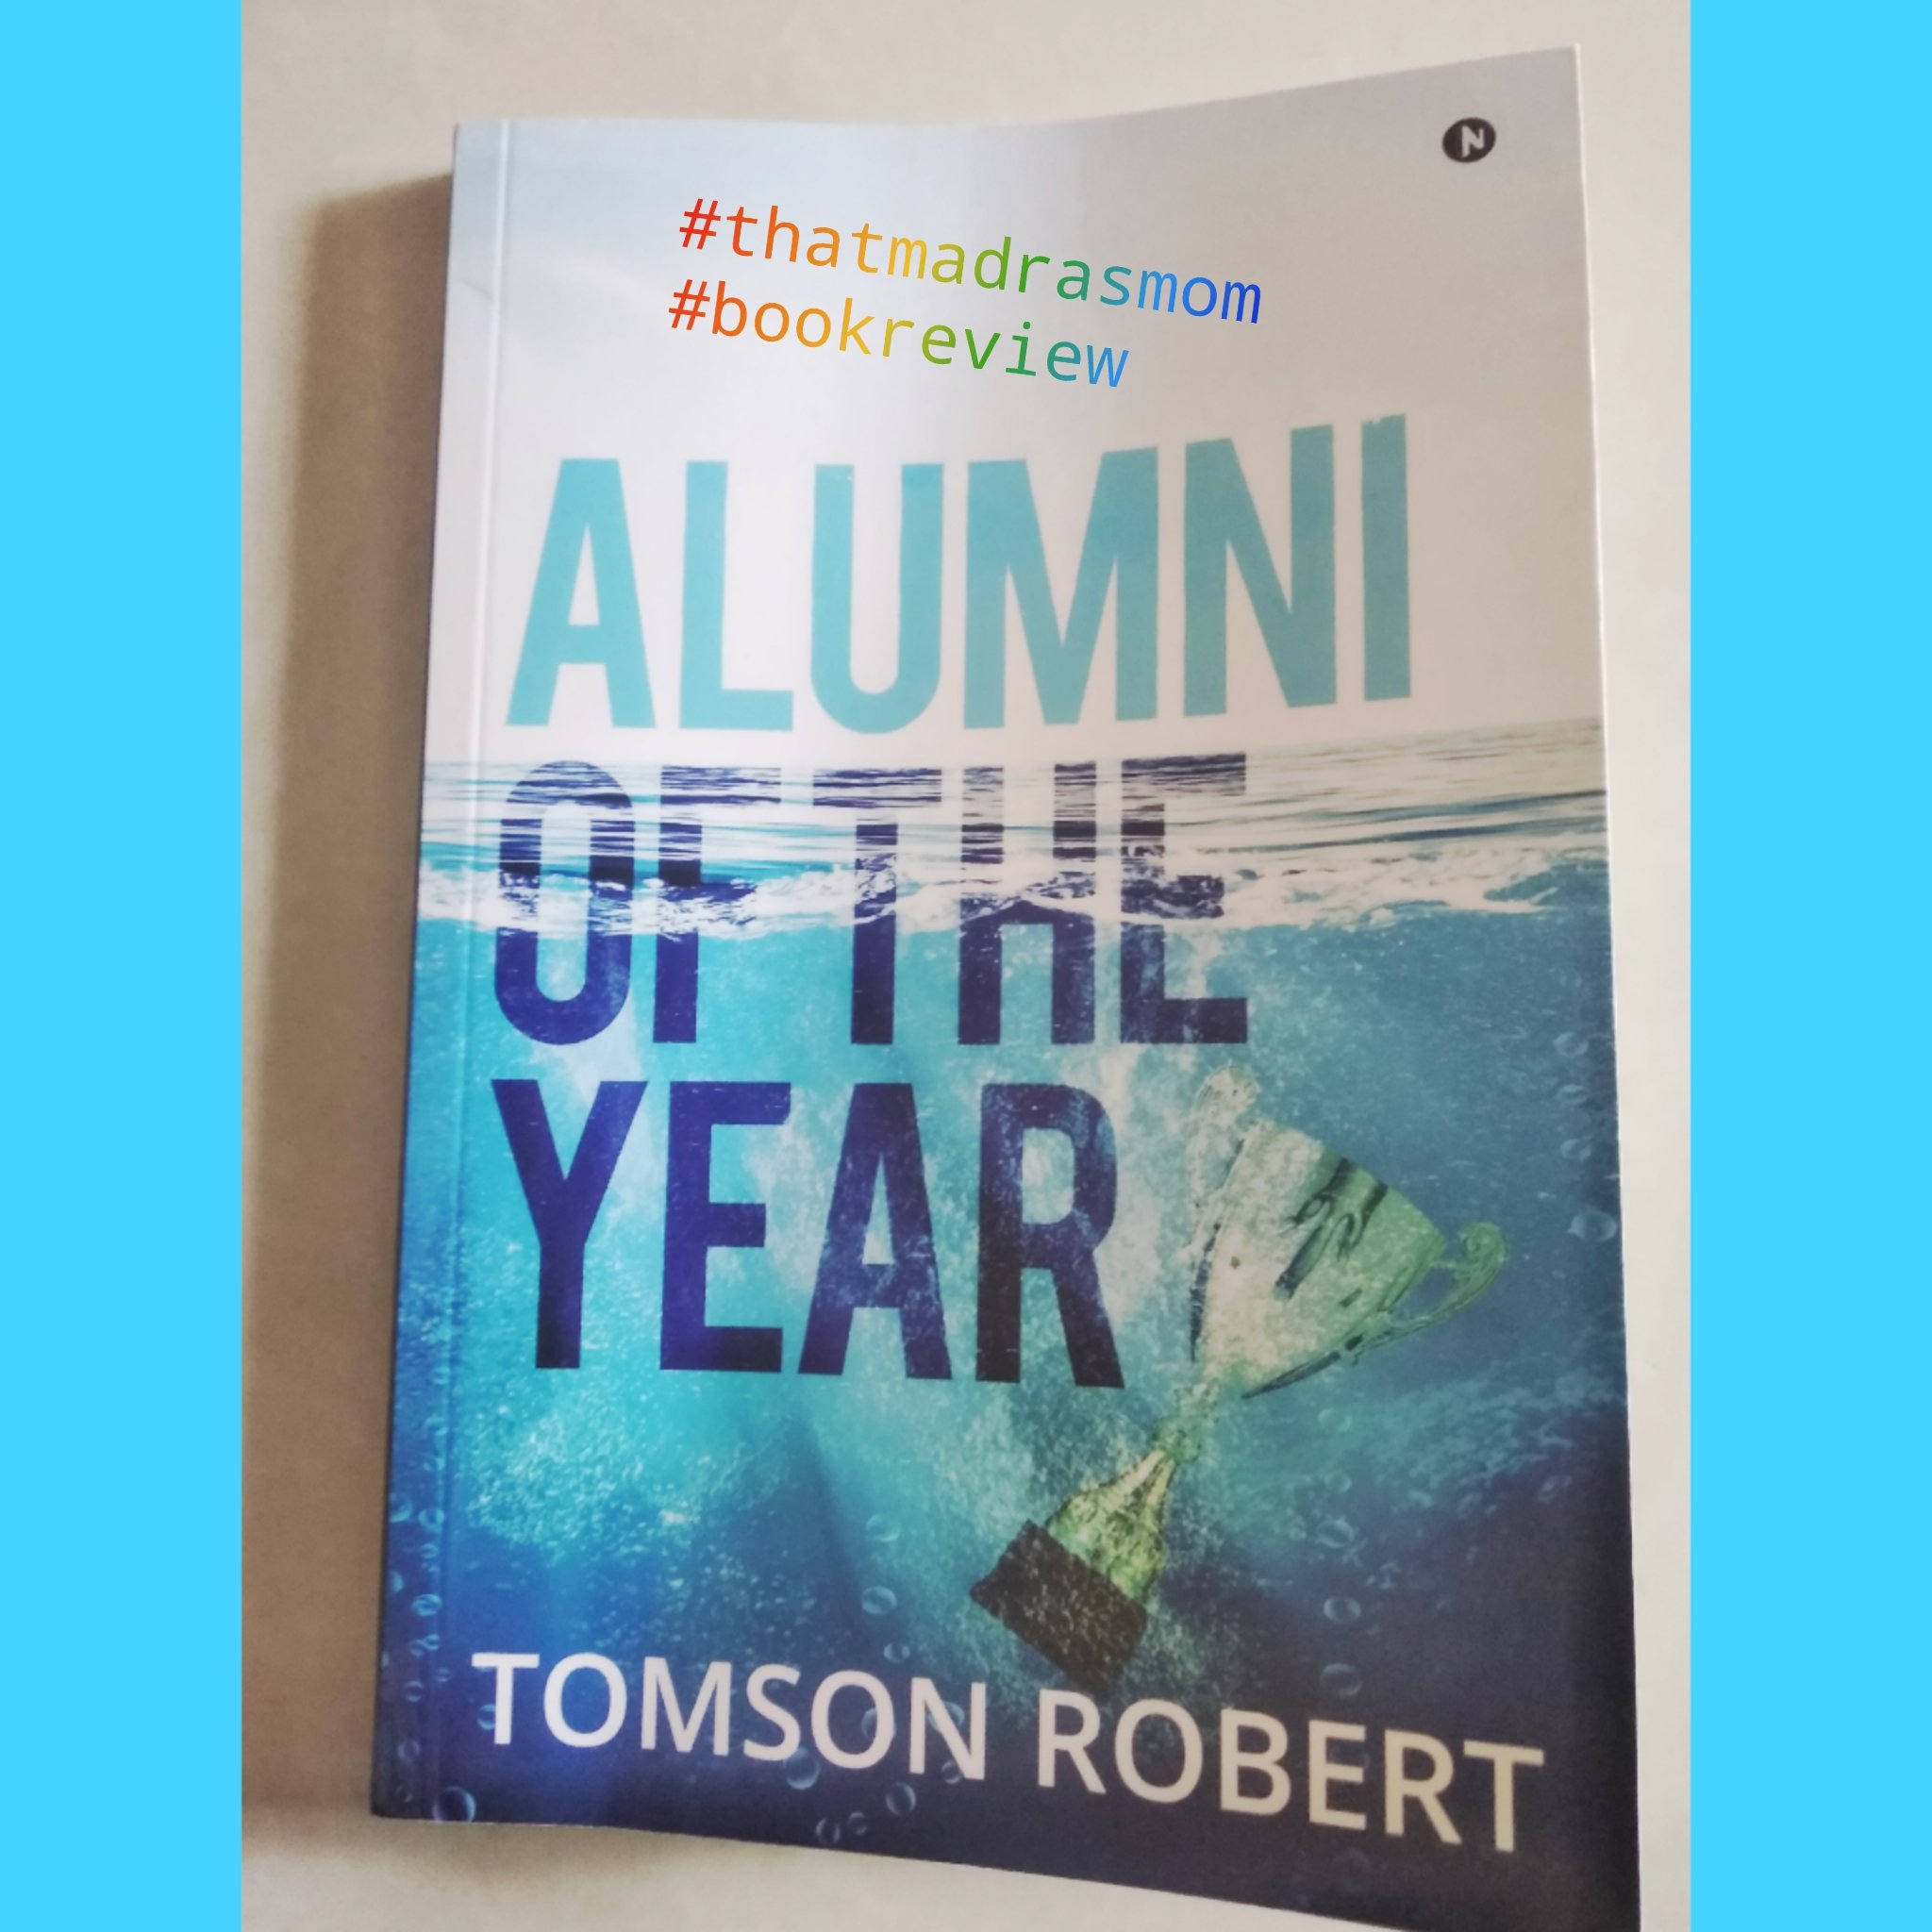 Book Review - Alumni Of The Year